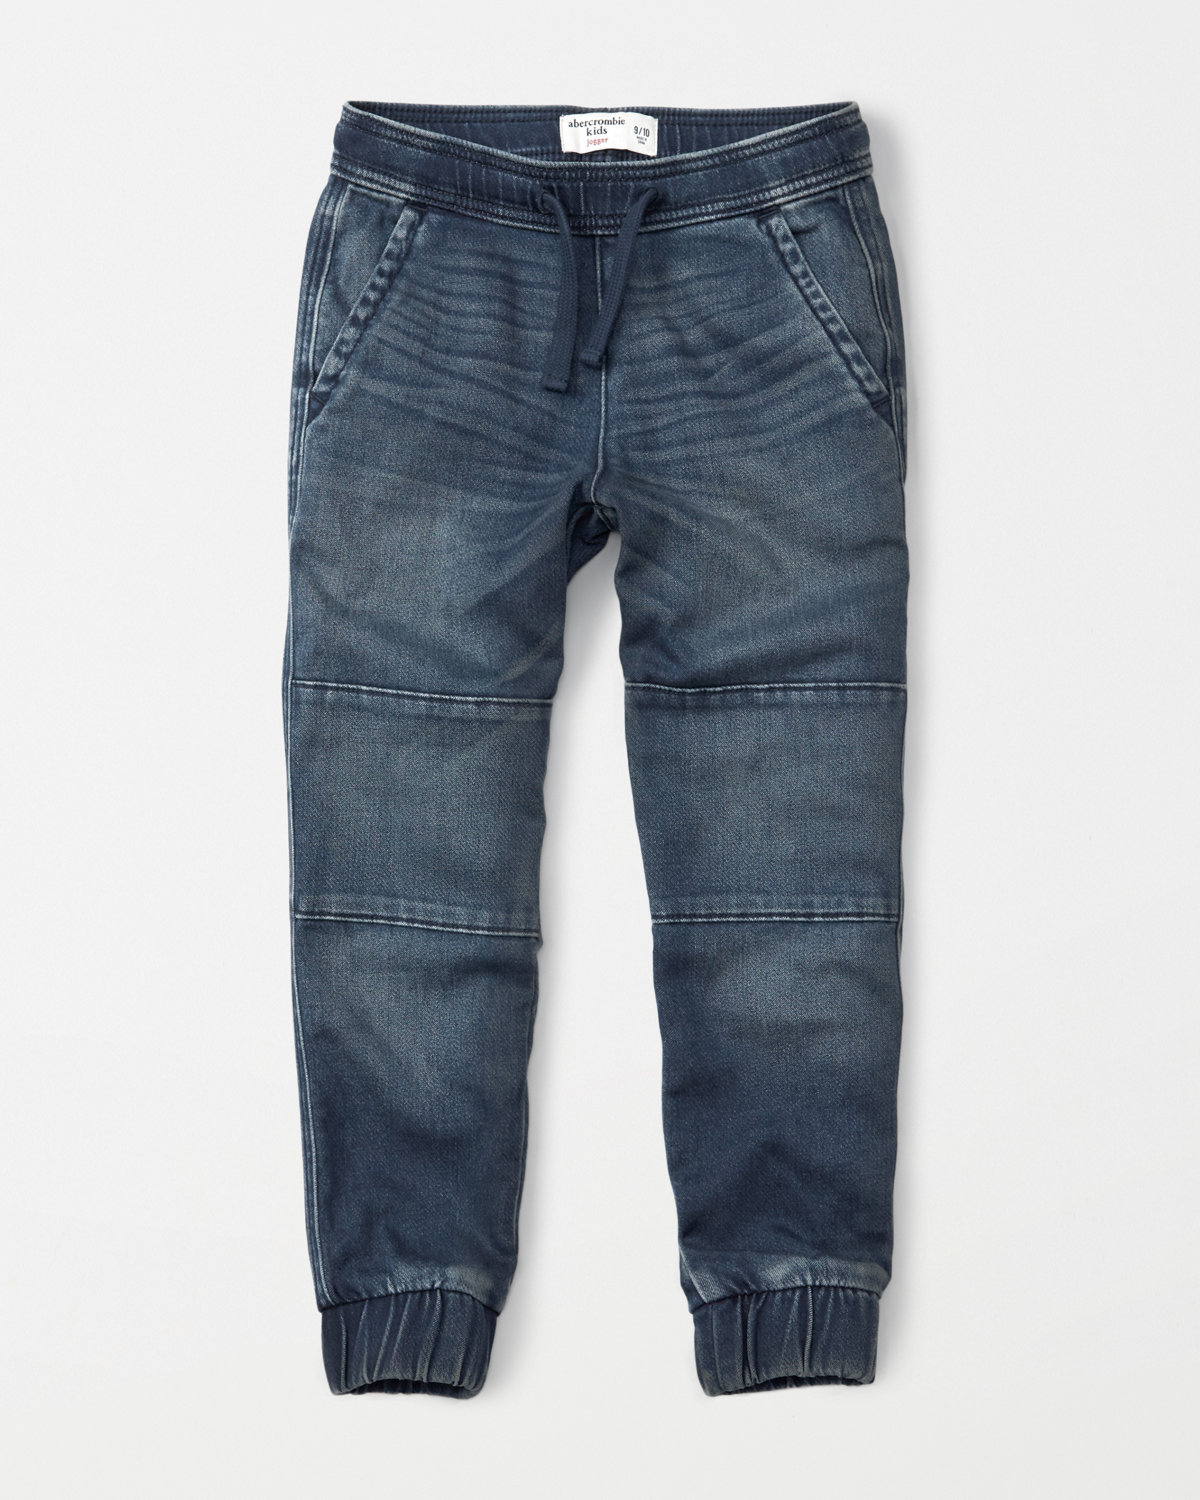 Find great deals on eBay for joggers for boys. Shop with confidence.